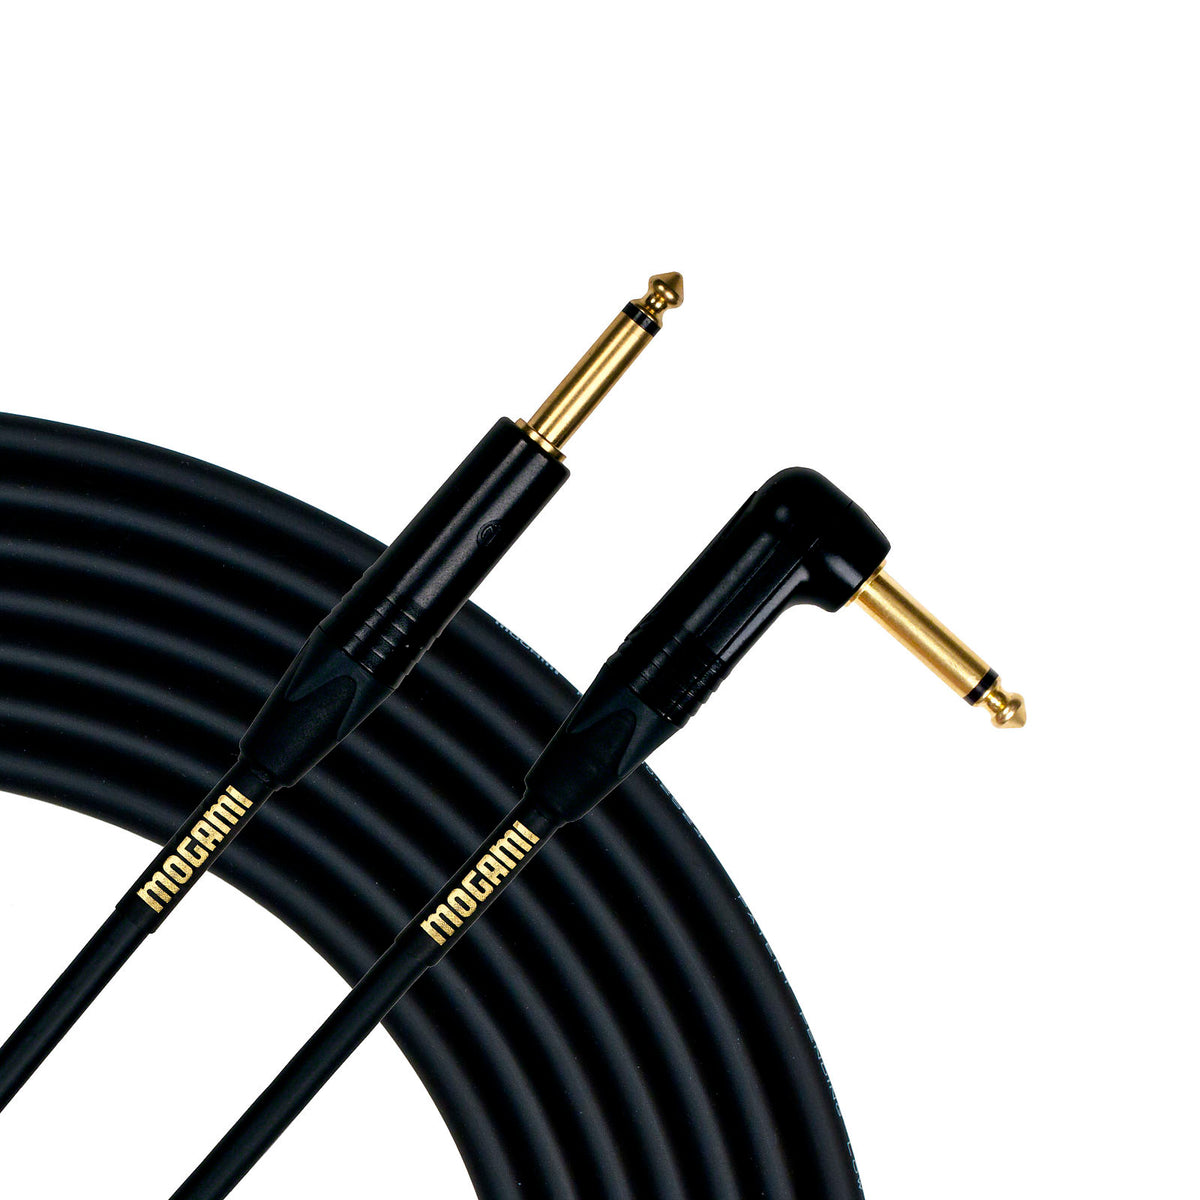 Mogami Gold Guitar/Instrument Cable (Straight to Right Angle End), 25 Foot